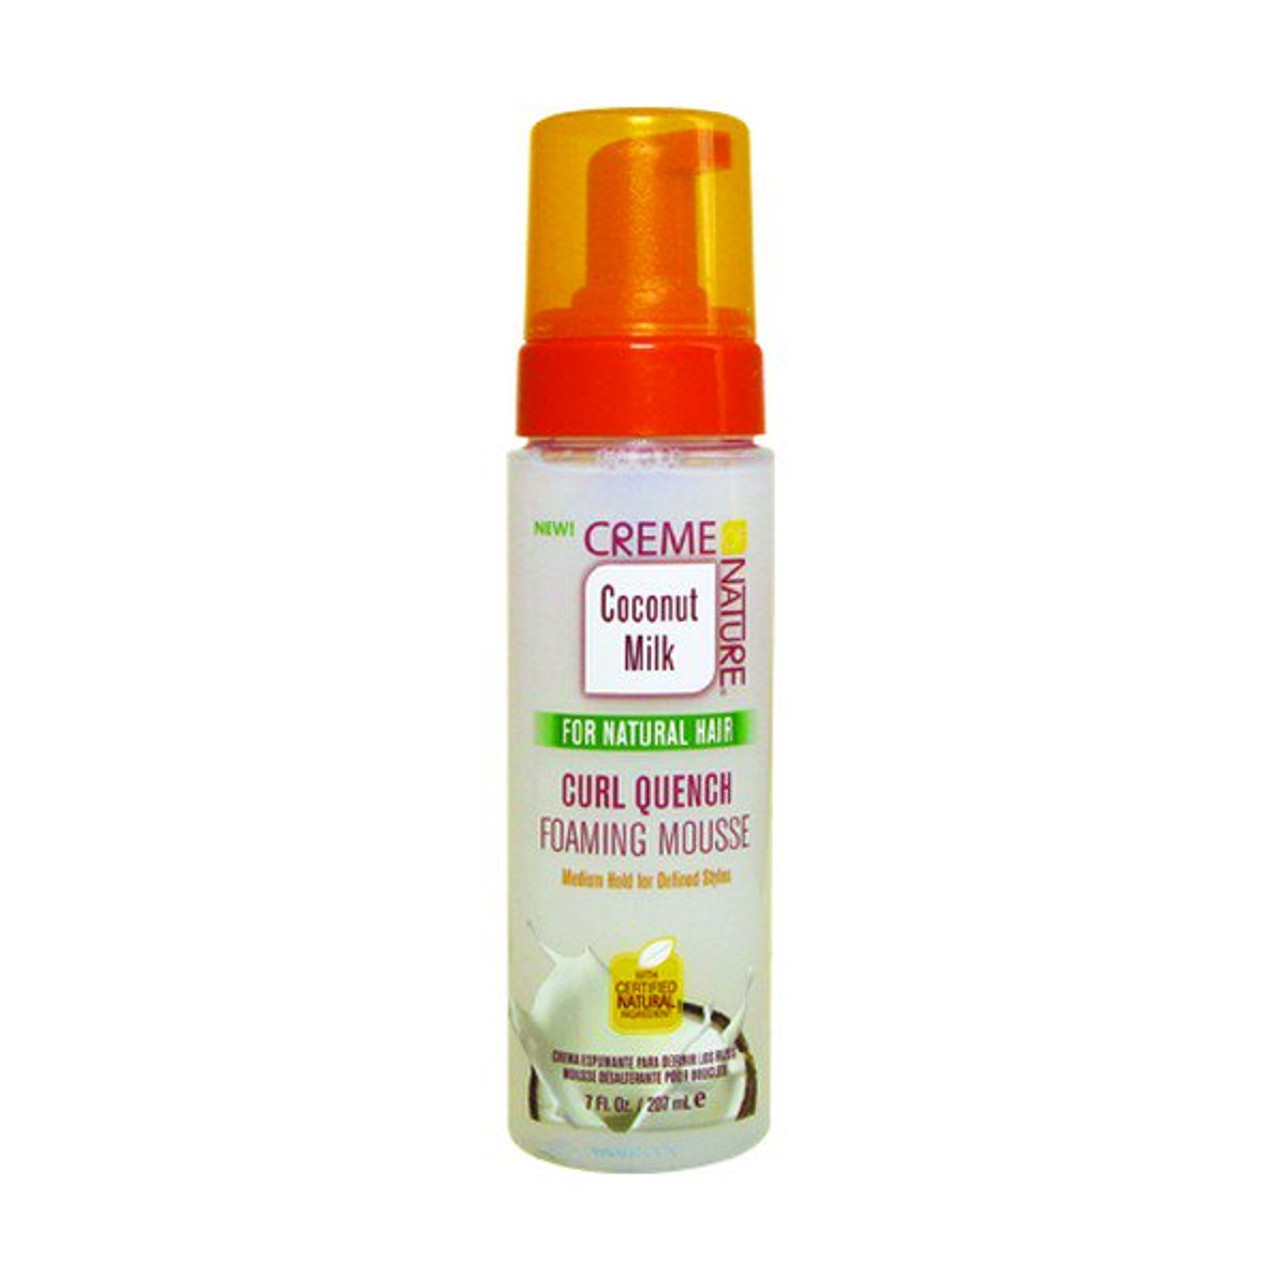 Creme of Nature Curl Quench Foaming Mousse 7 oz.